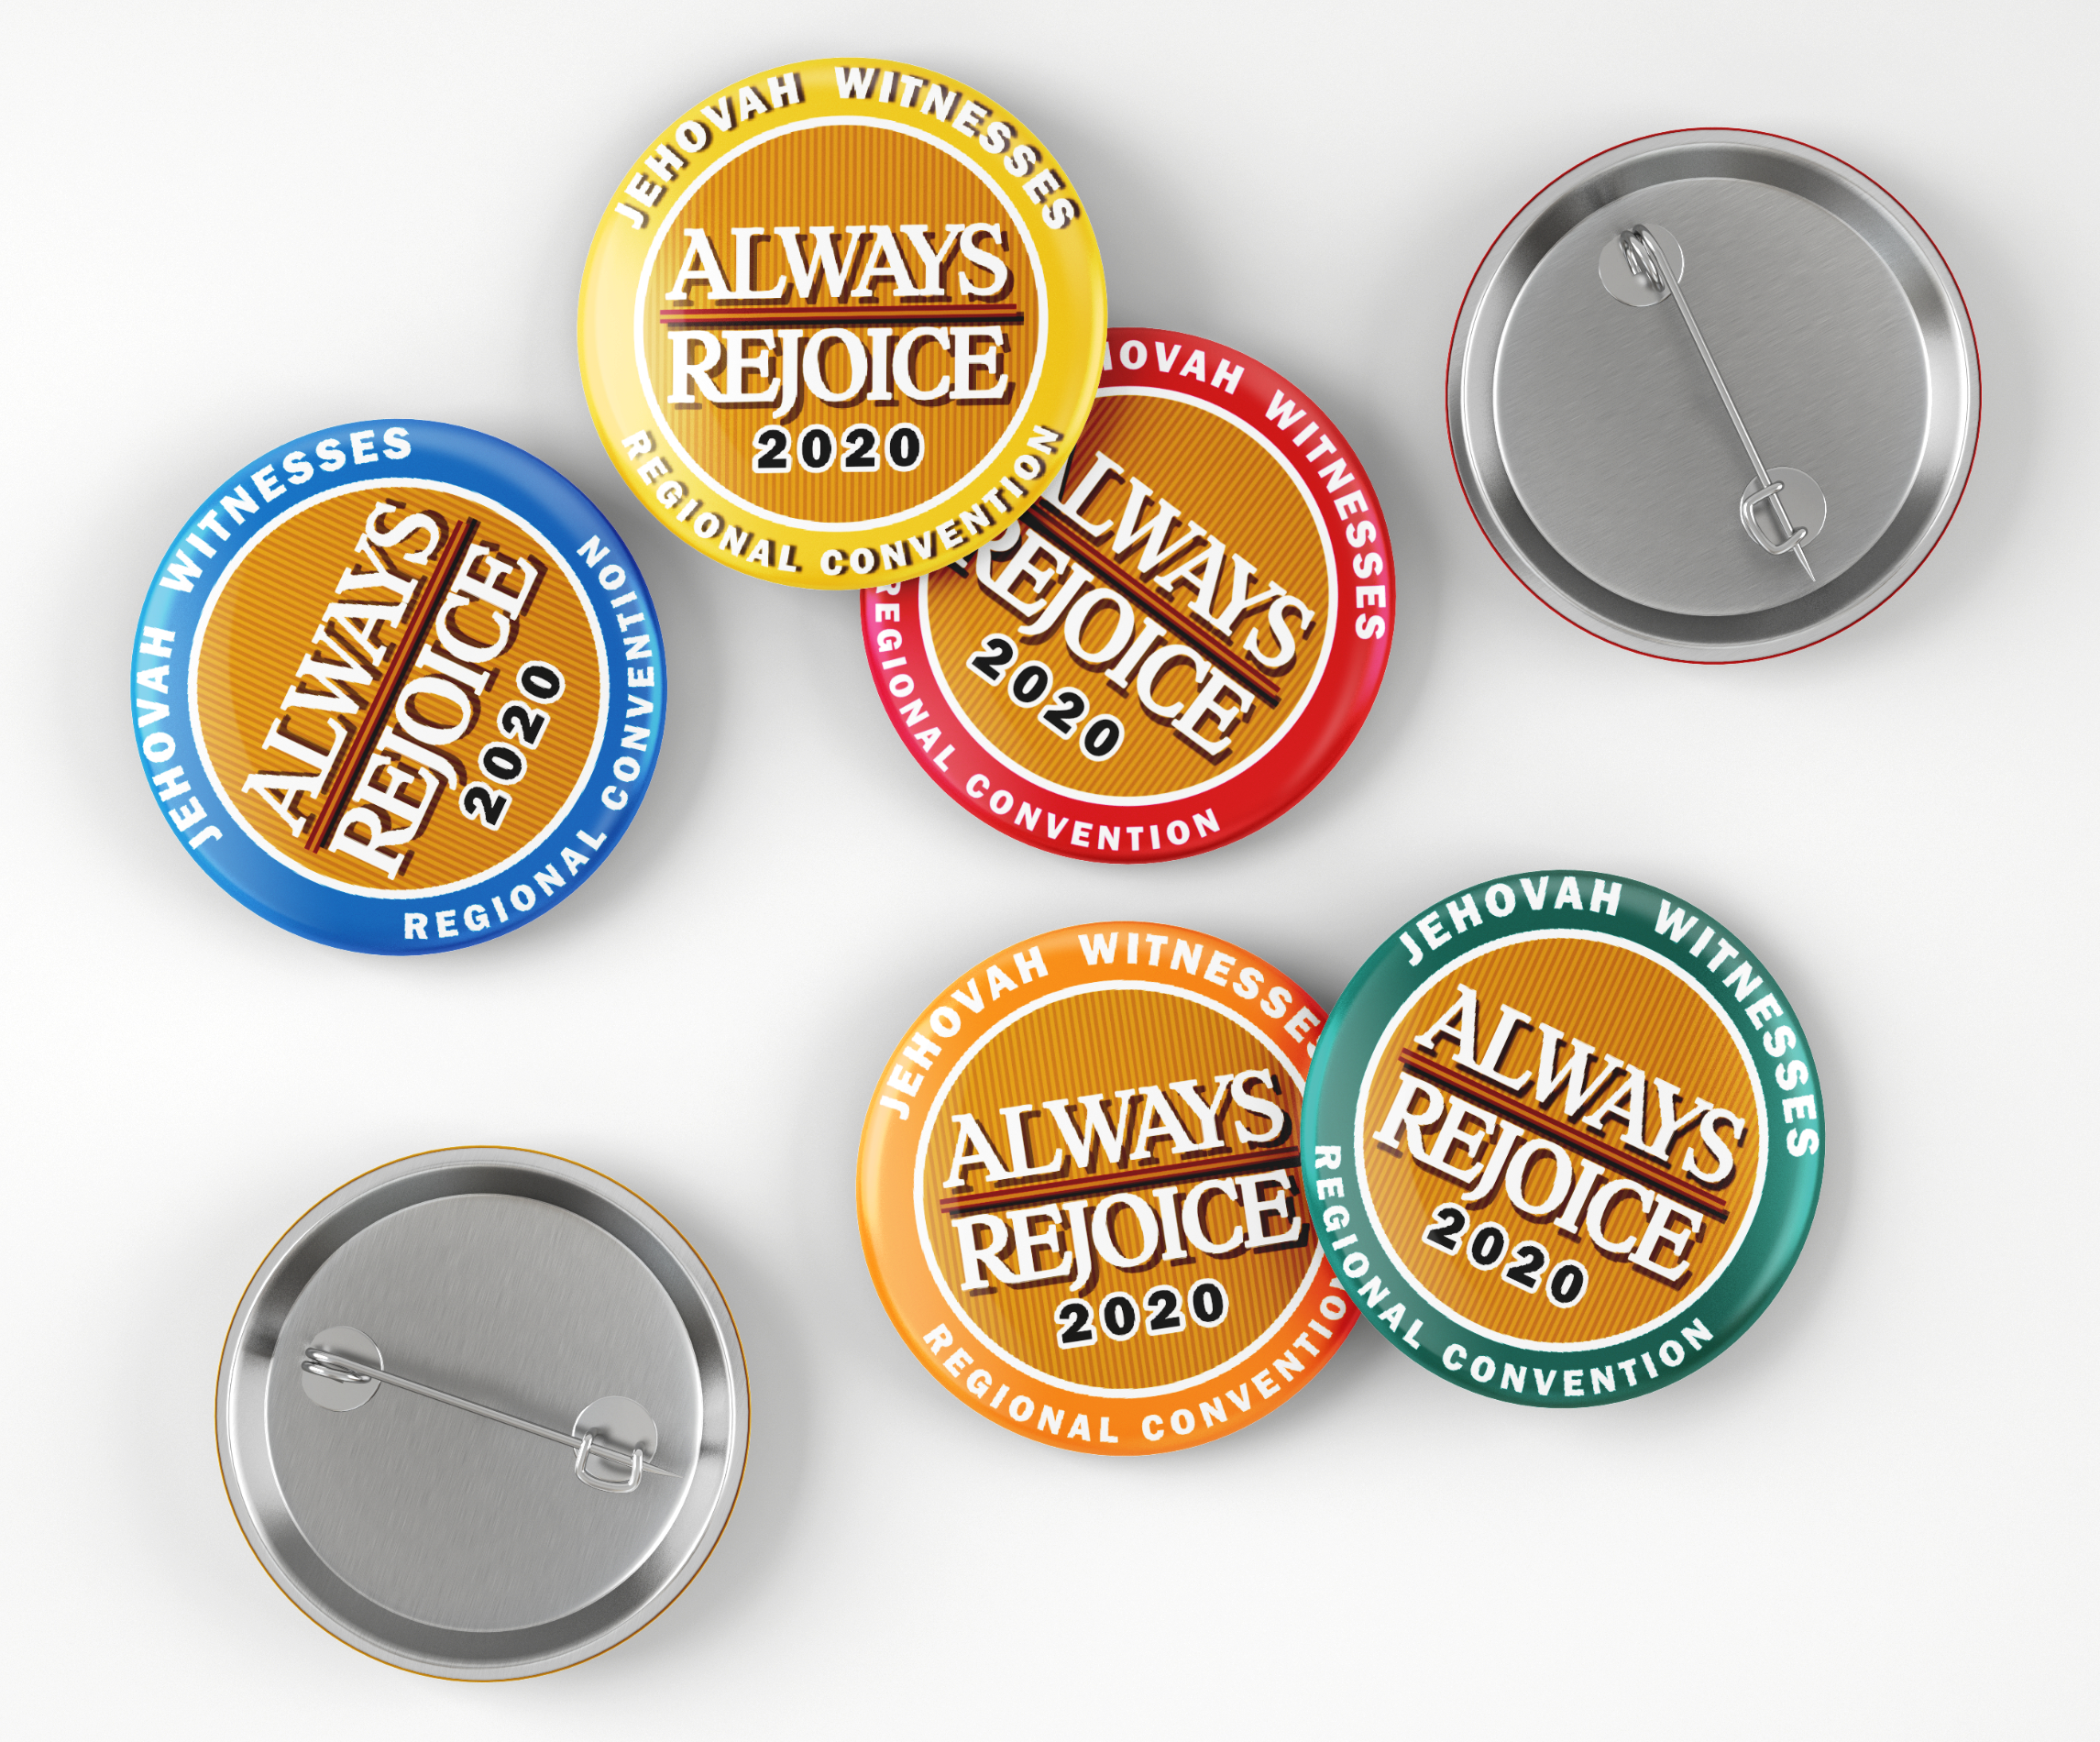 Always Rejoice 2020 Convention Button Pin Gifts -Medallion Theme